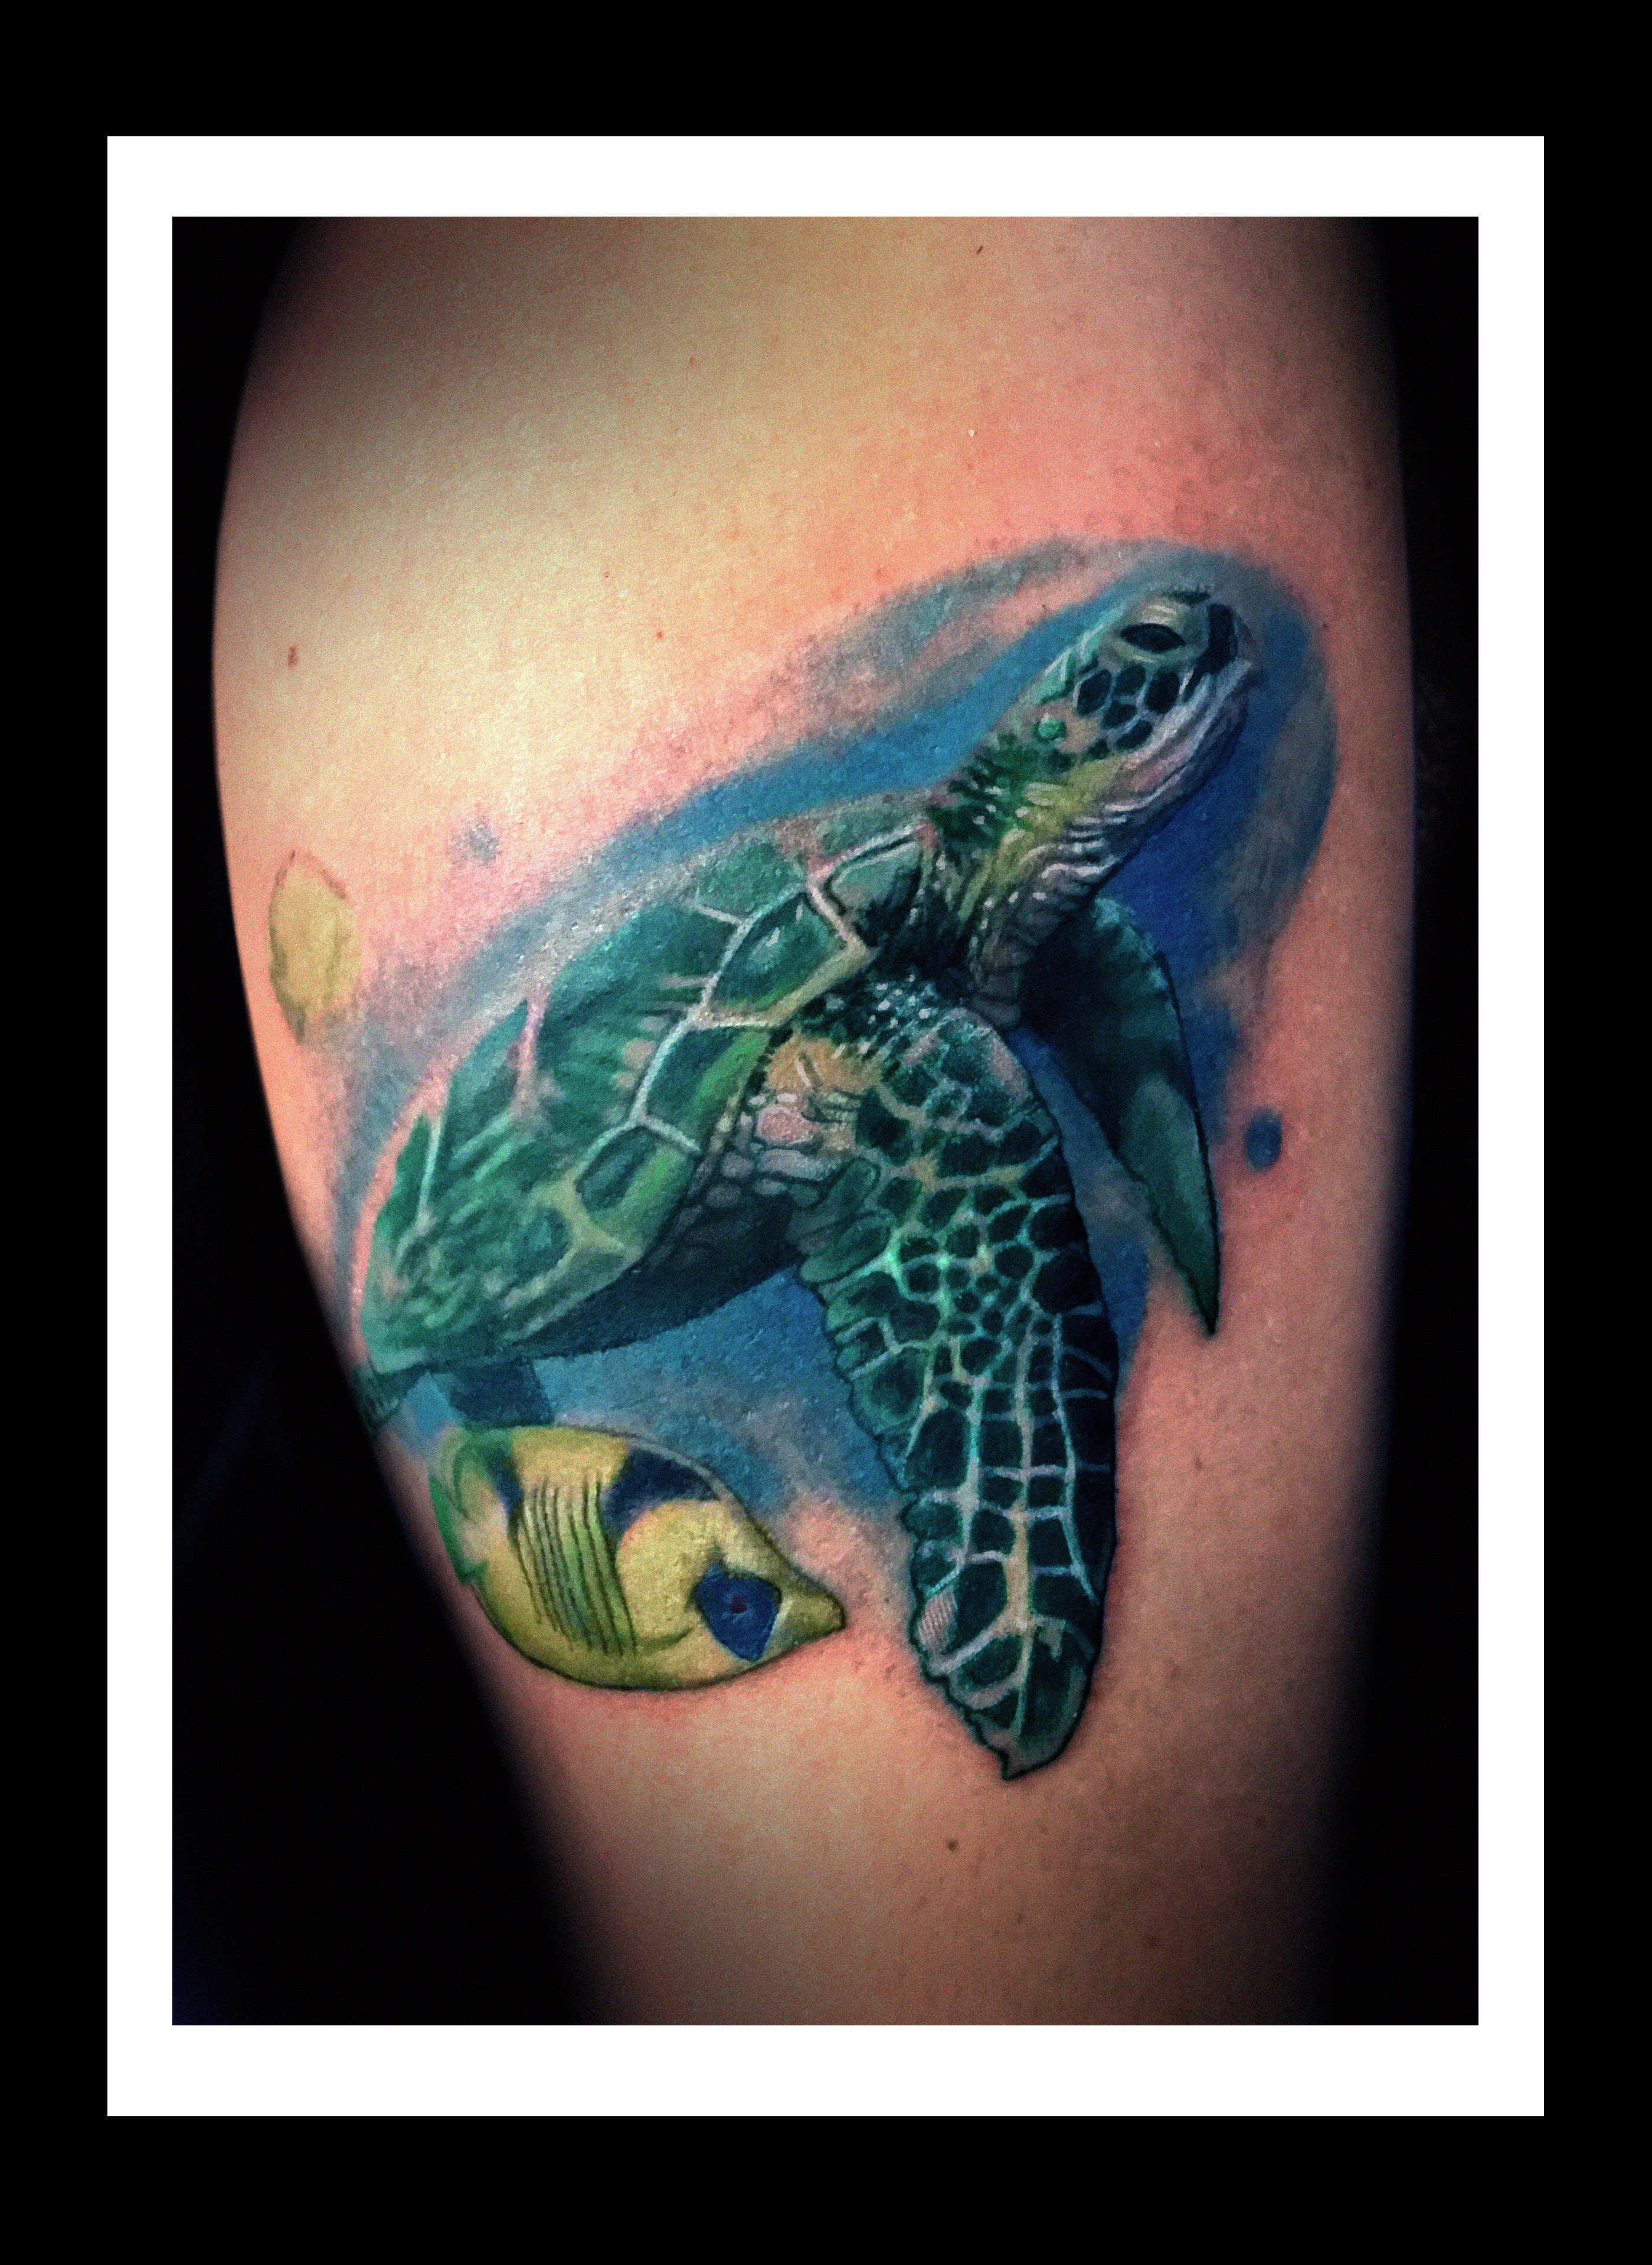 Charles maurice tomlinson certified artist for Inflictions tattoo covina ca